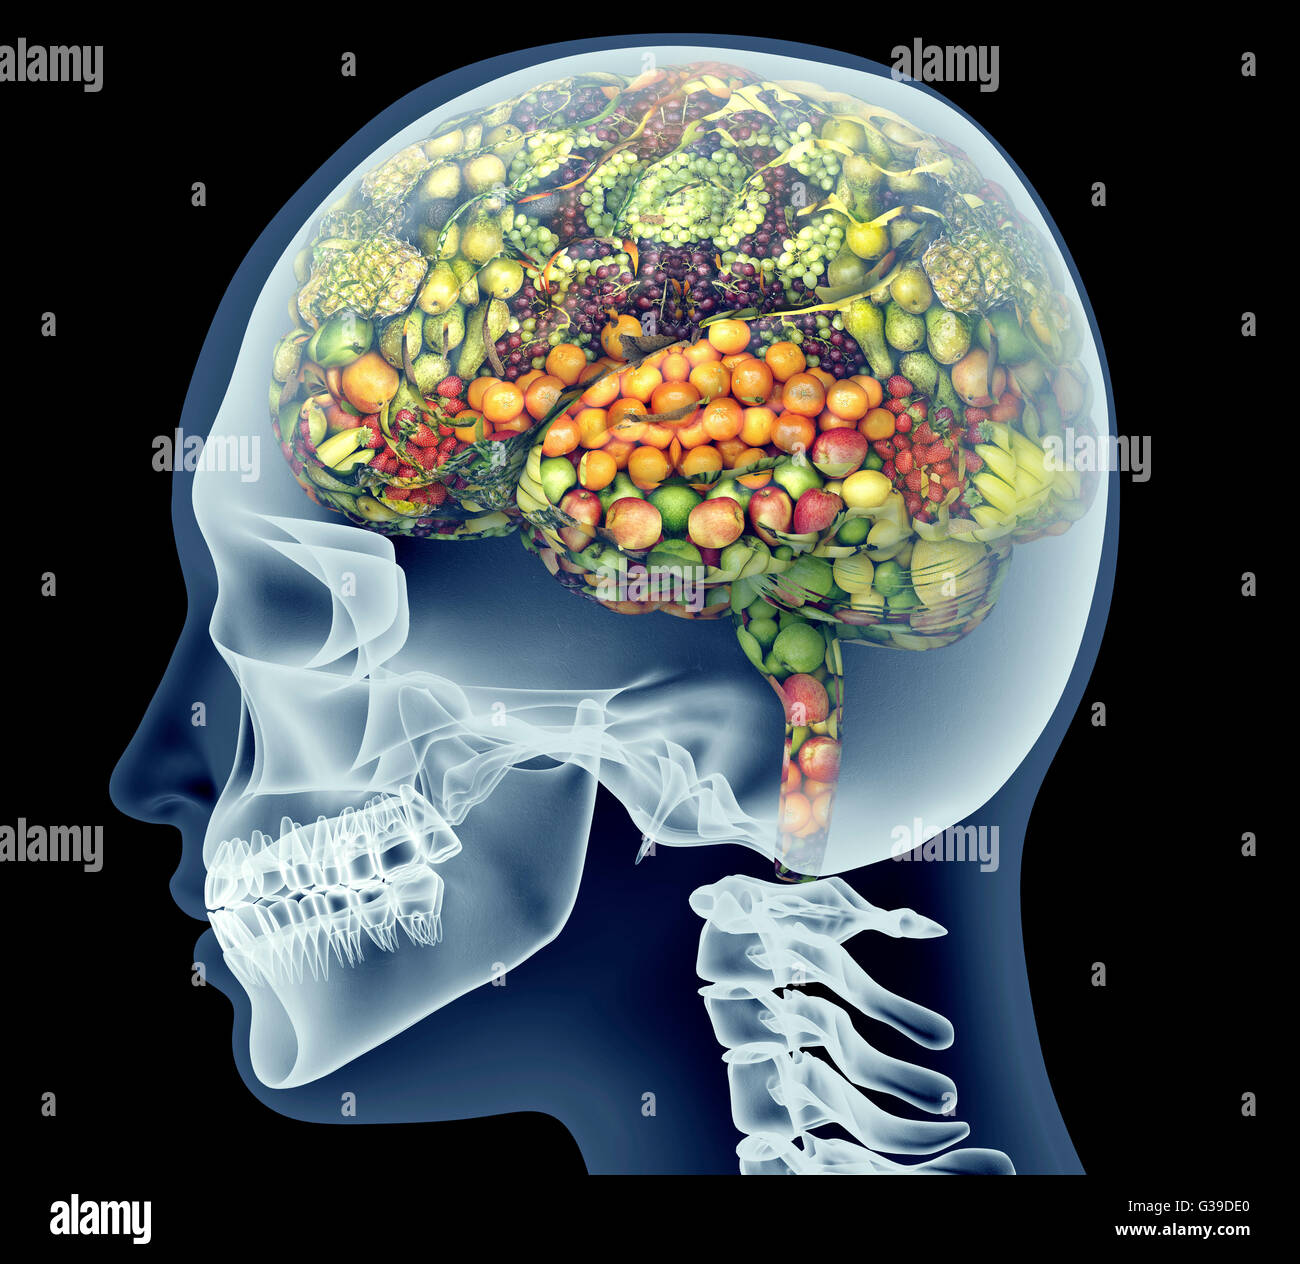 x-ray of human head with fruit and vegetables for brain. - Stock Image